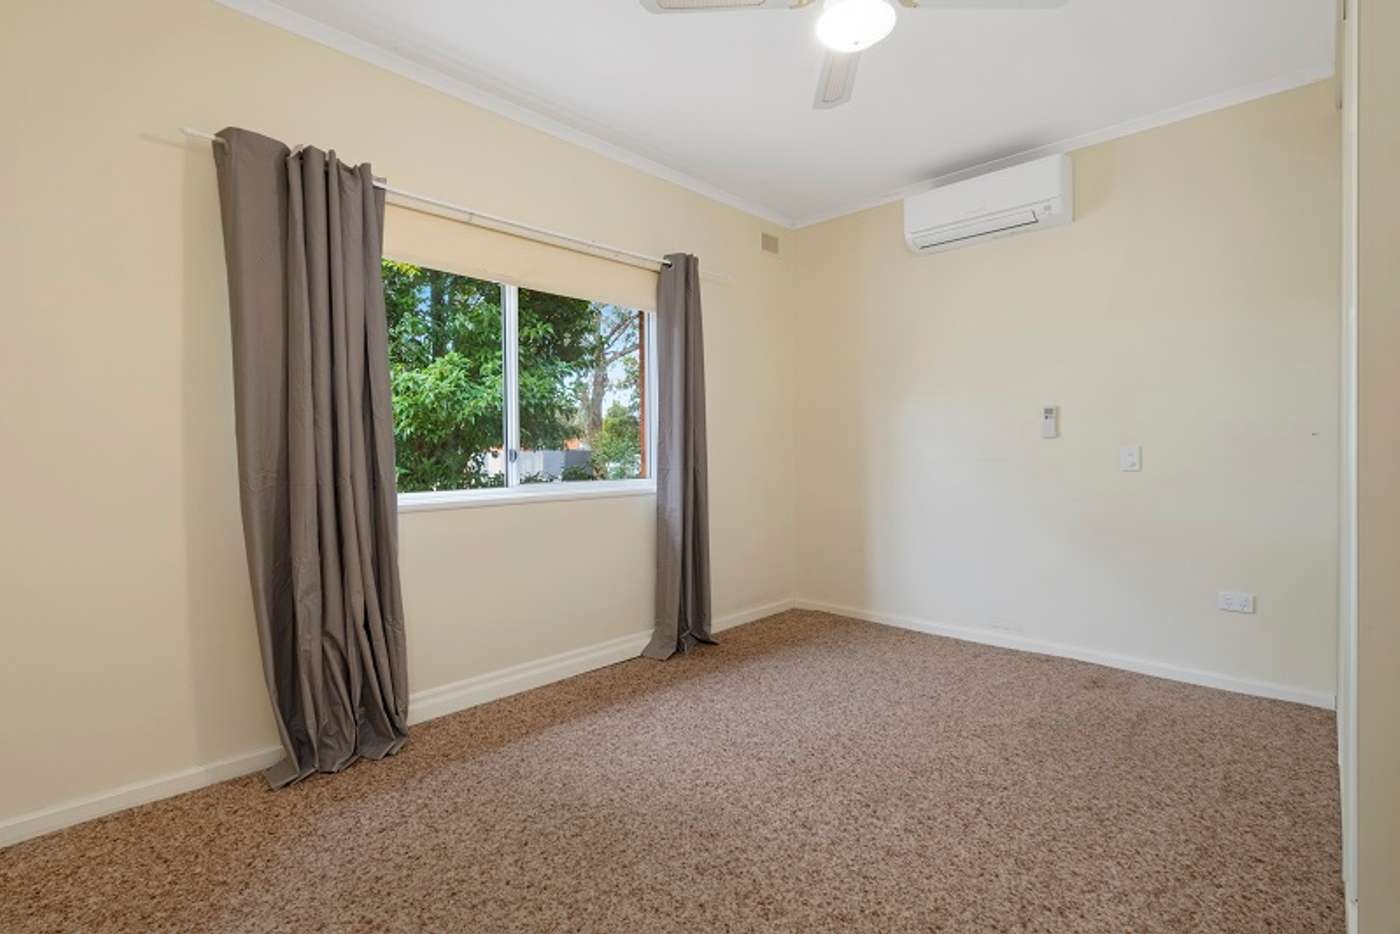 Fifth view of Homely house listing, 12 Todd Street, Berri SA 5343